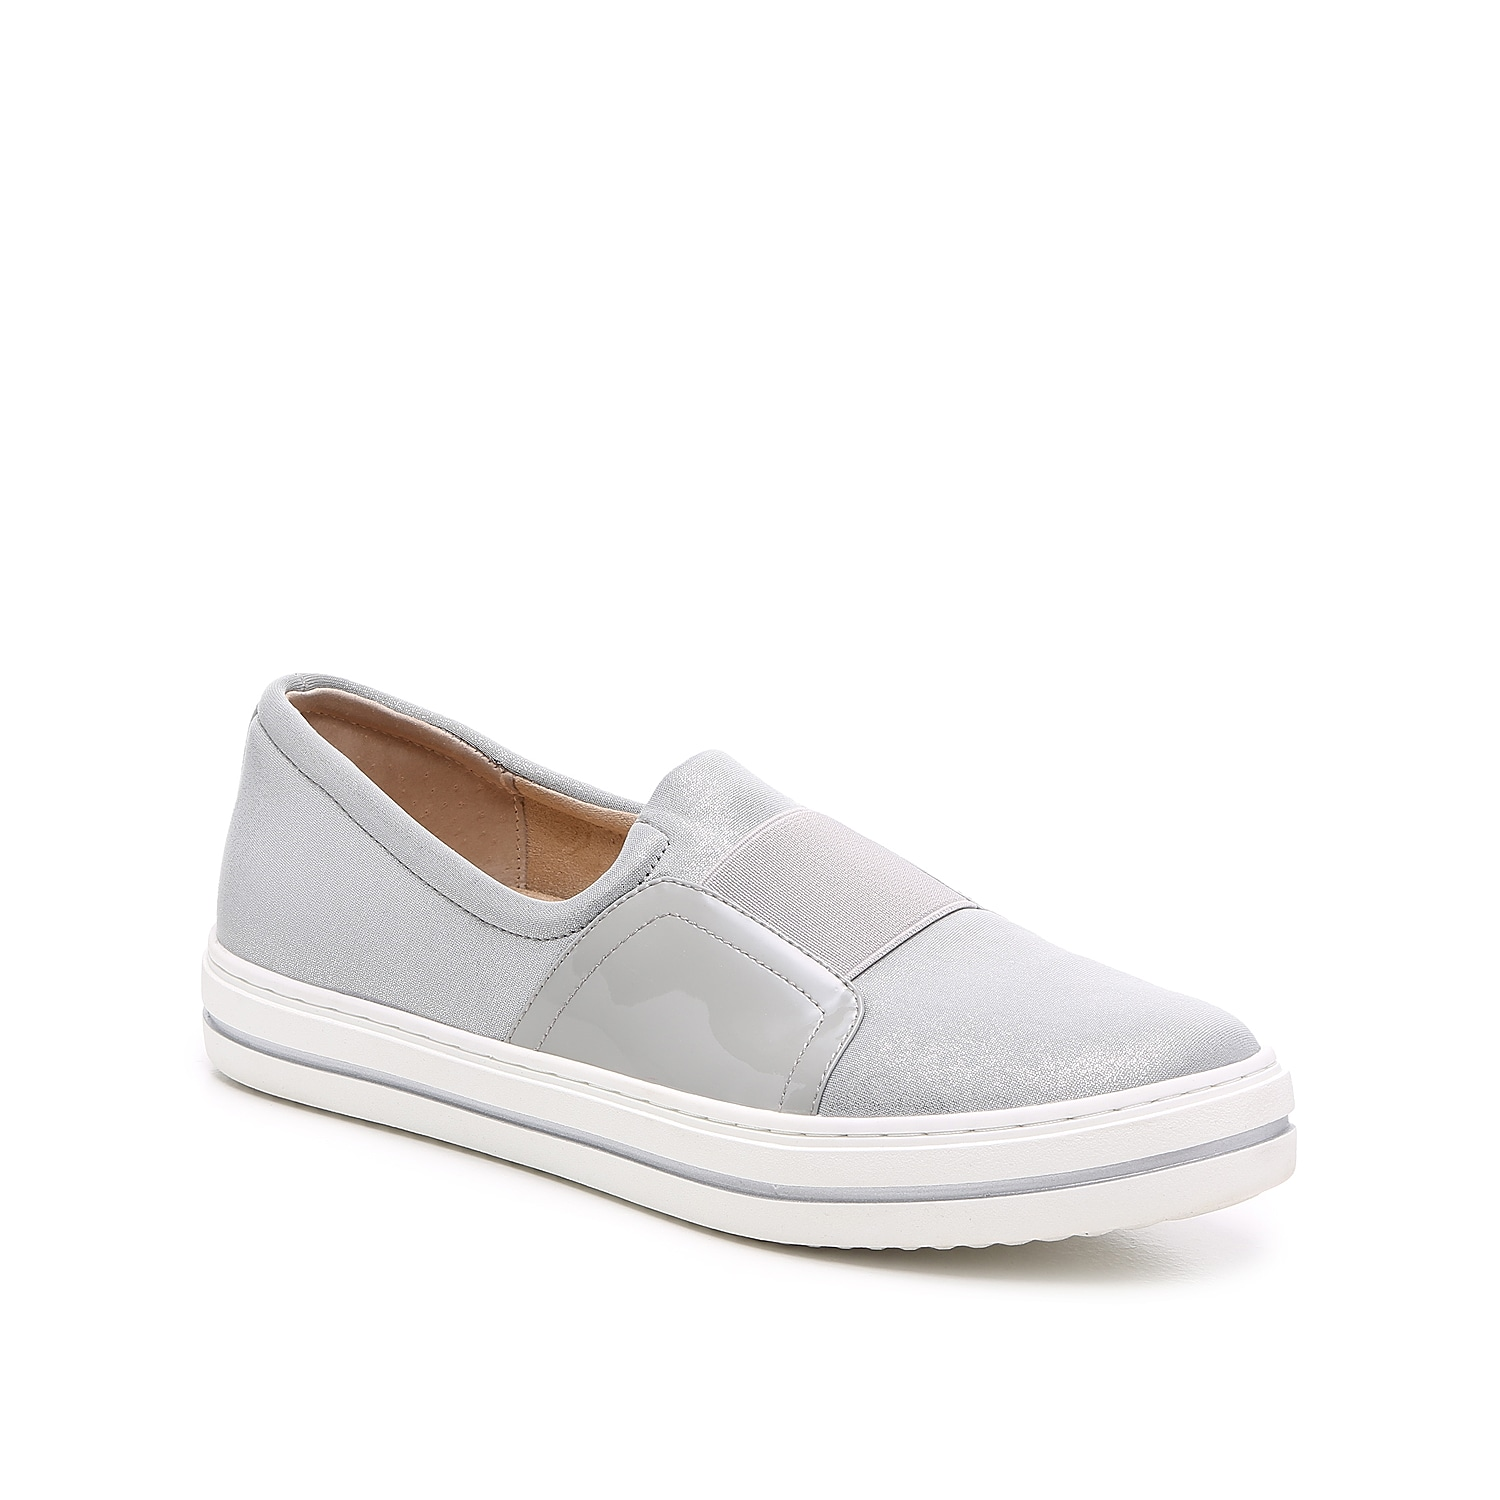 Add a sporty flair to your look while you run errands, with the Yorga slip-on sneaker from VANELi!